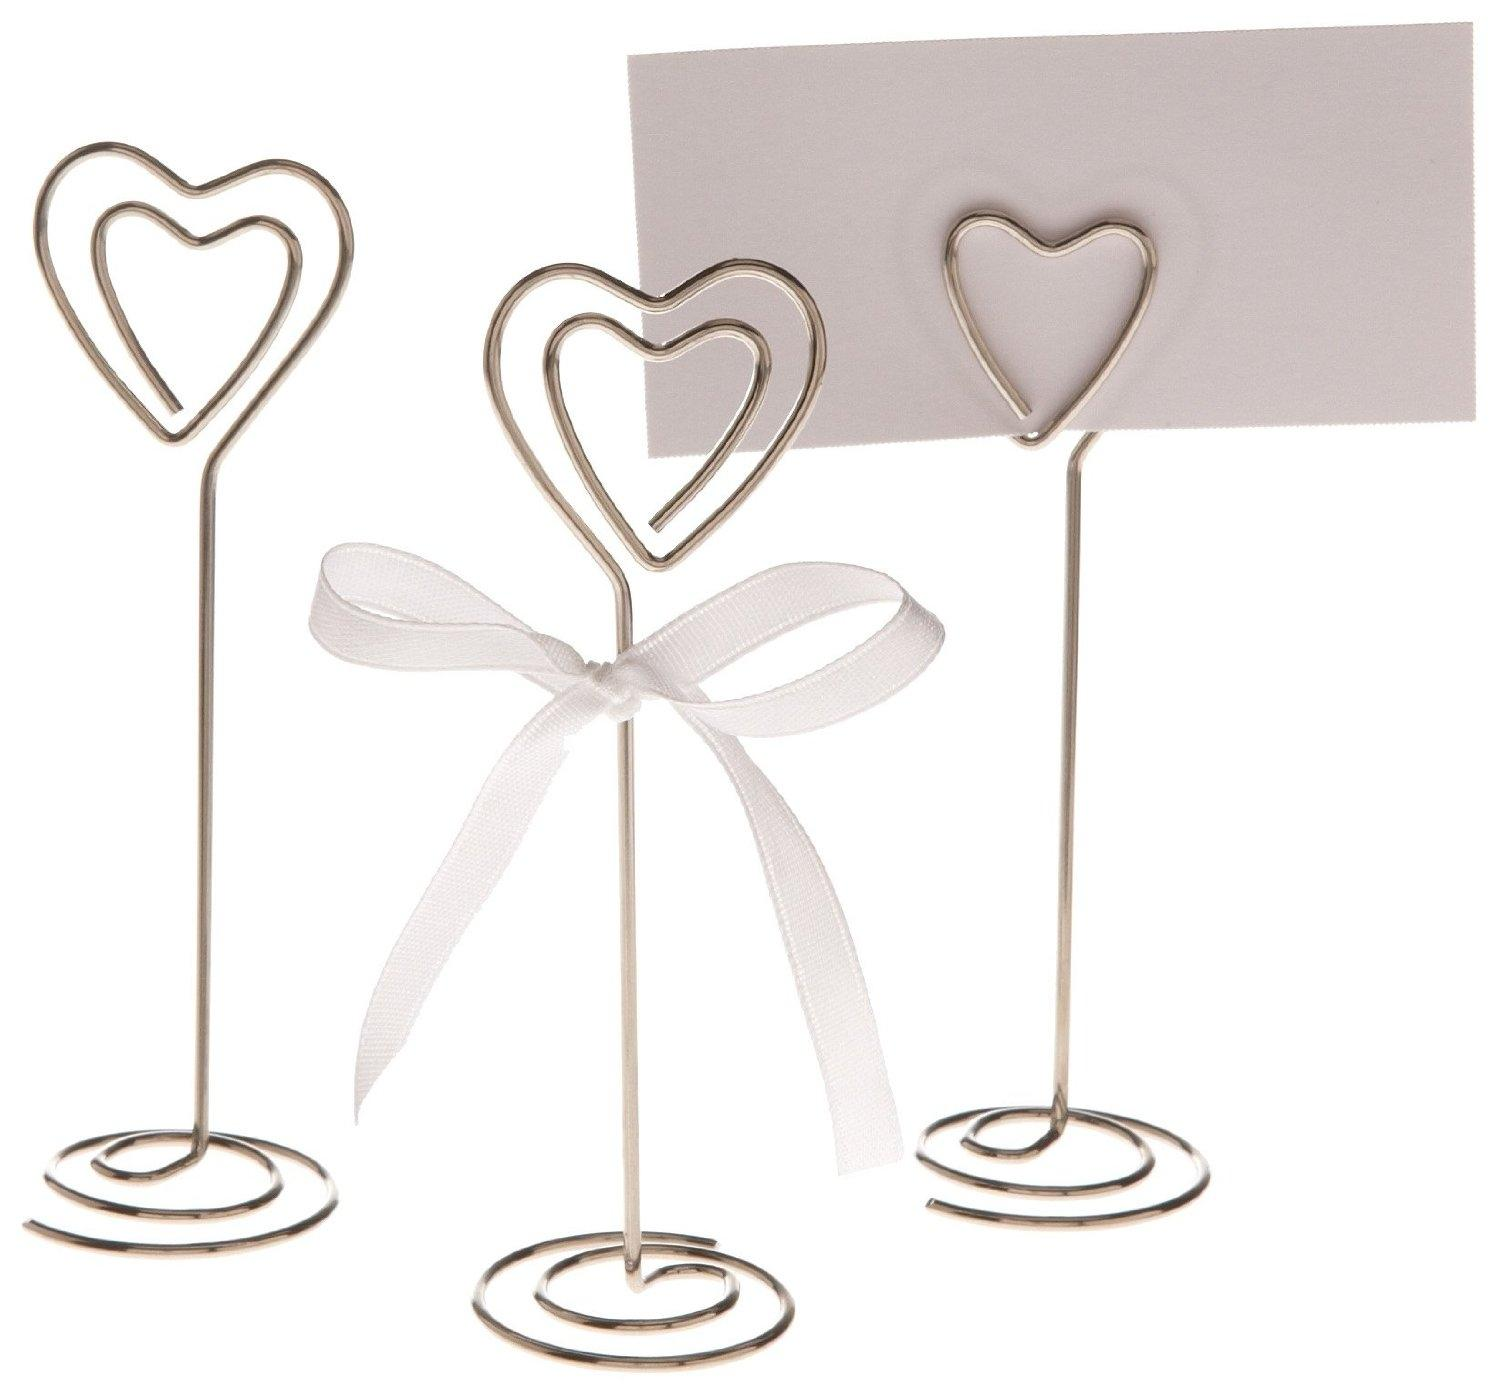 Delicieux Silver 10x Heart Shape Table Number Holder Place Card Holders Clips Stands  ...